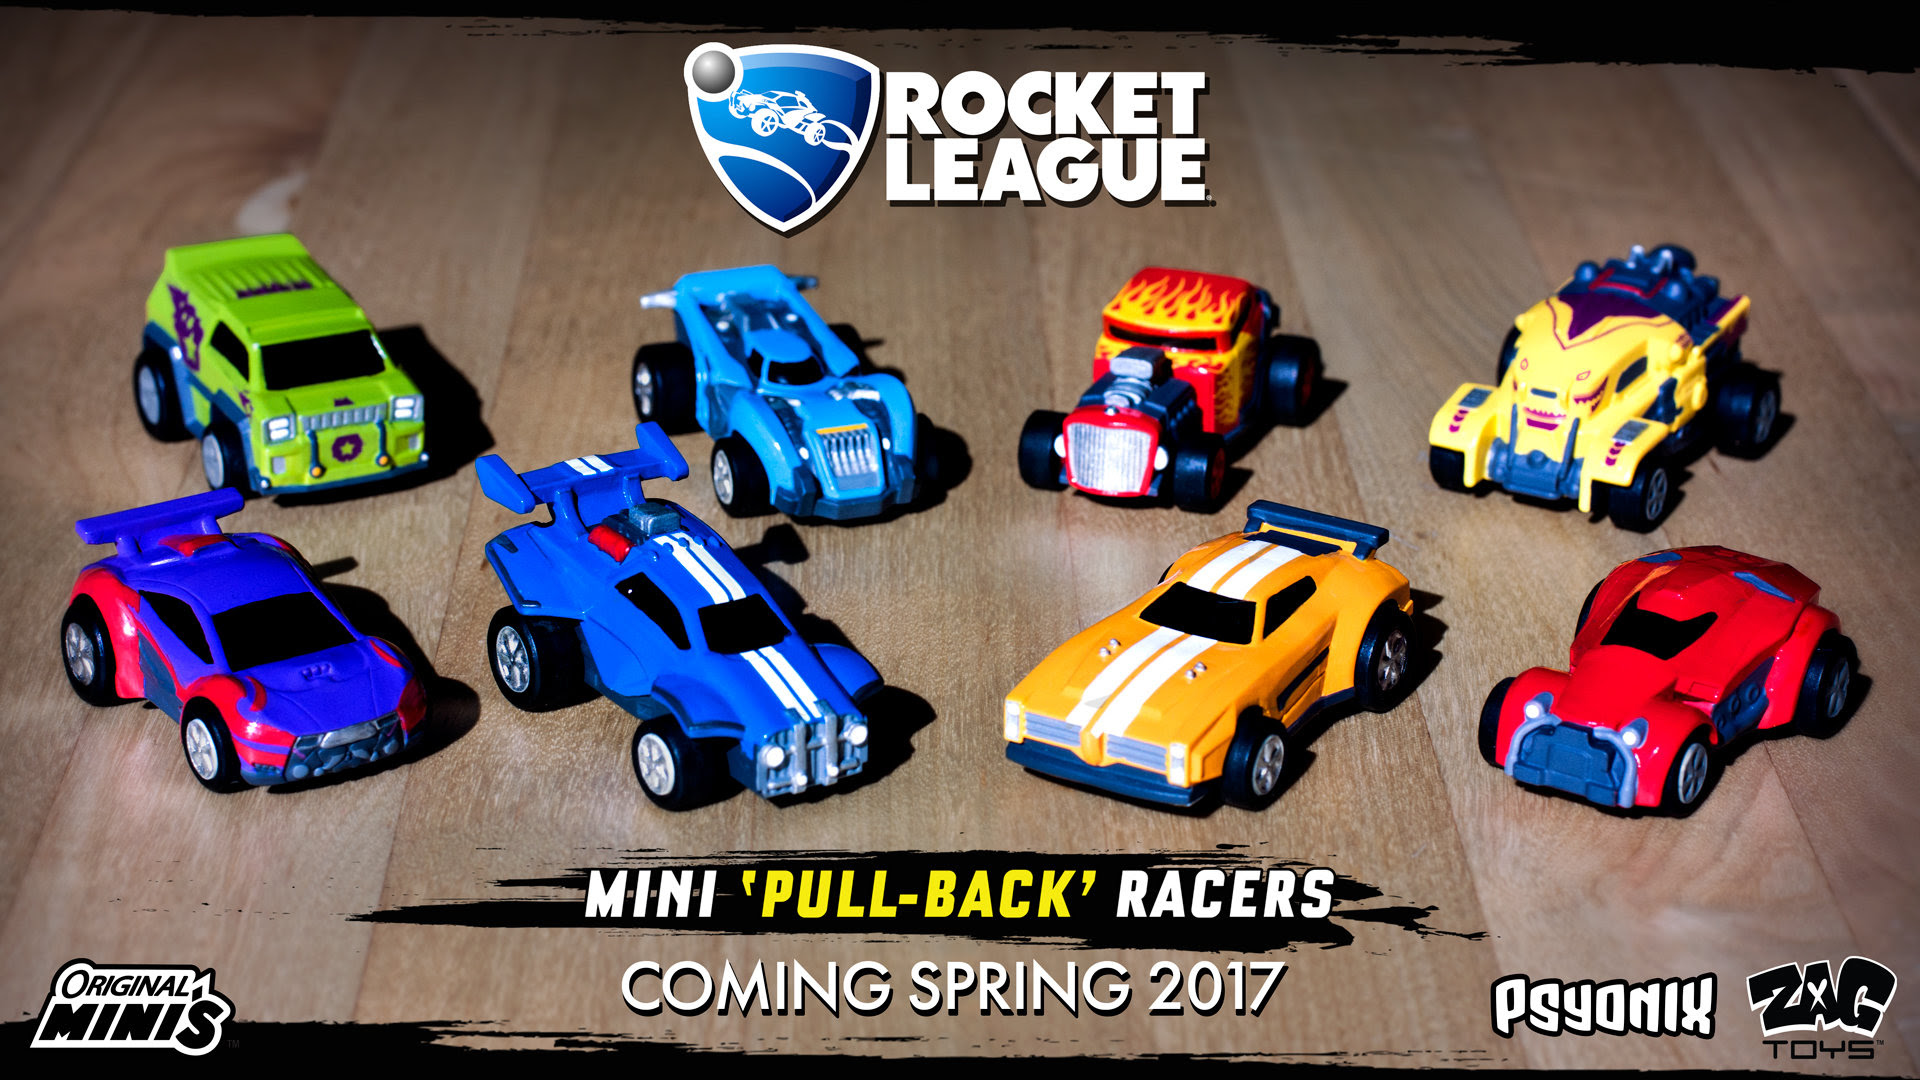 Rocket League is ting a line of toy cars